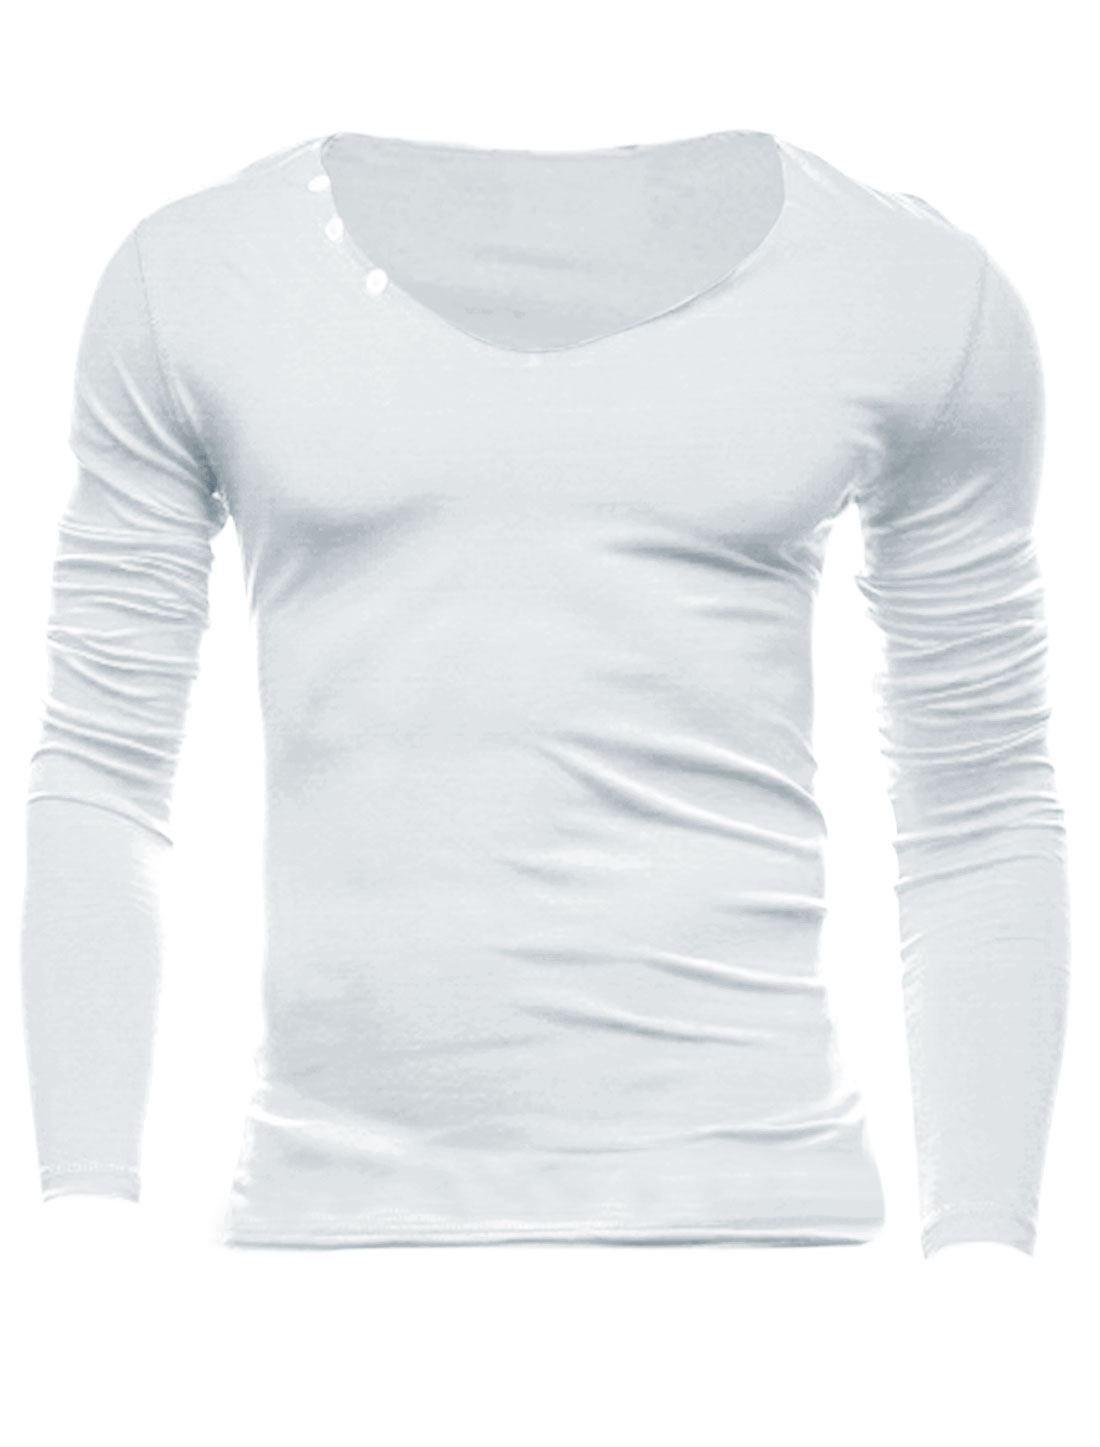 Men Pullover Round Neck Buttons Decor Casual Slim Tee Shirt White M